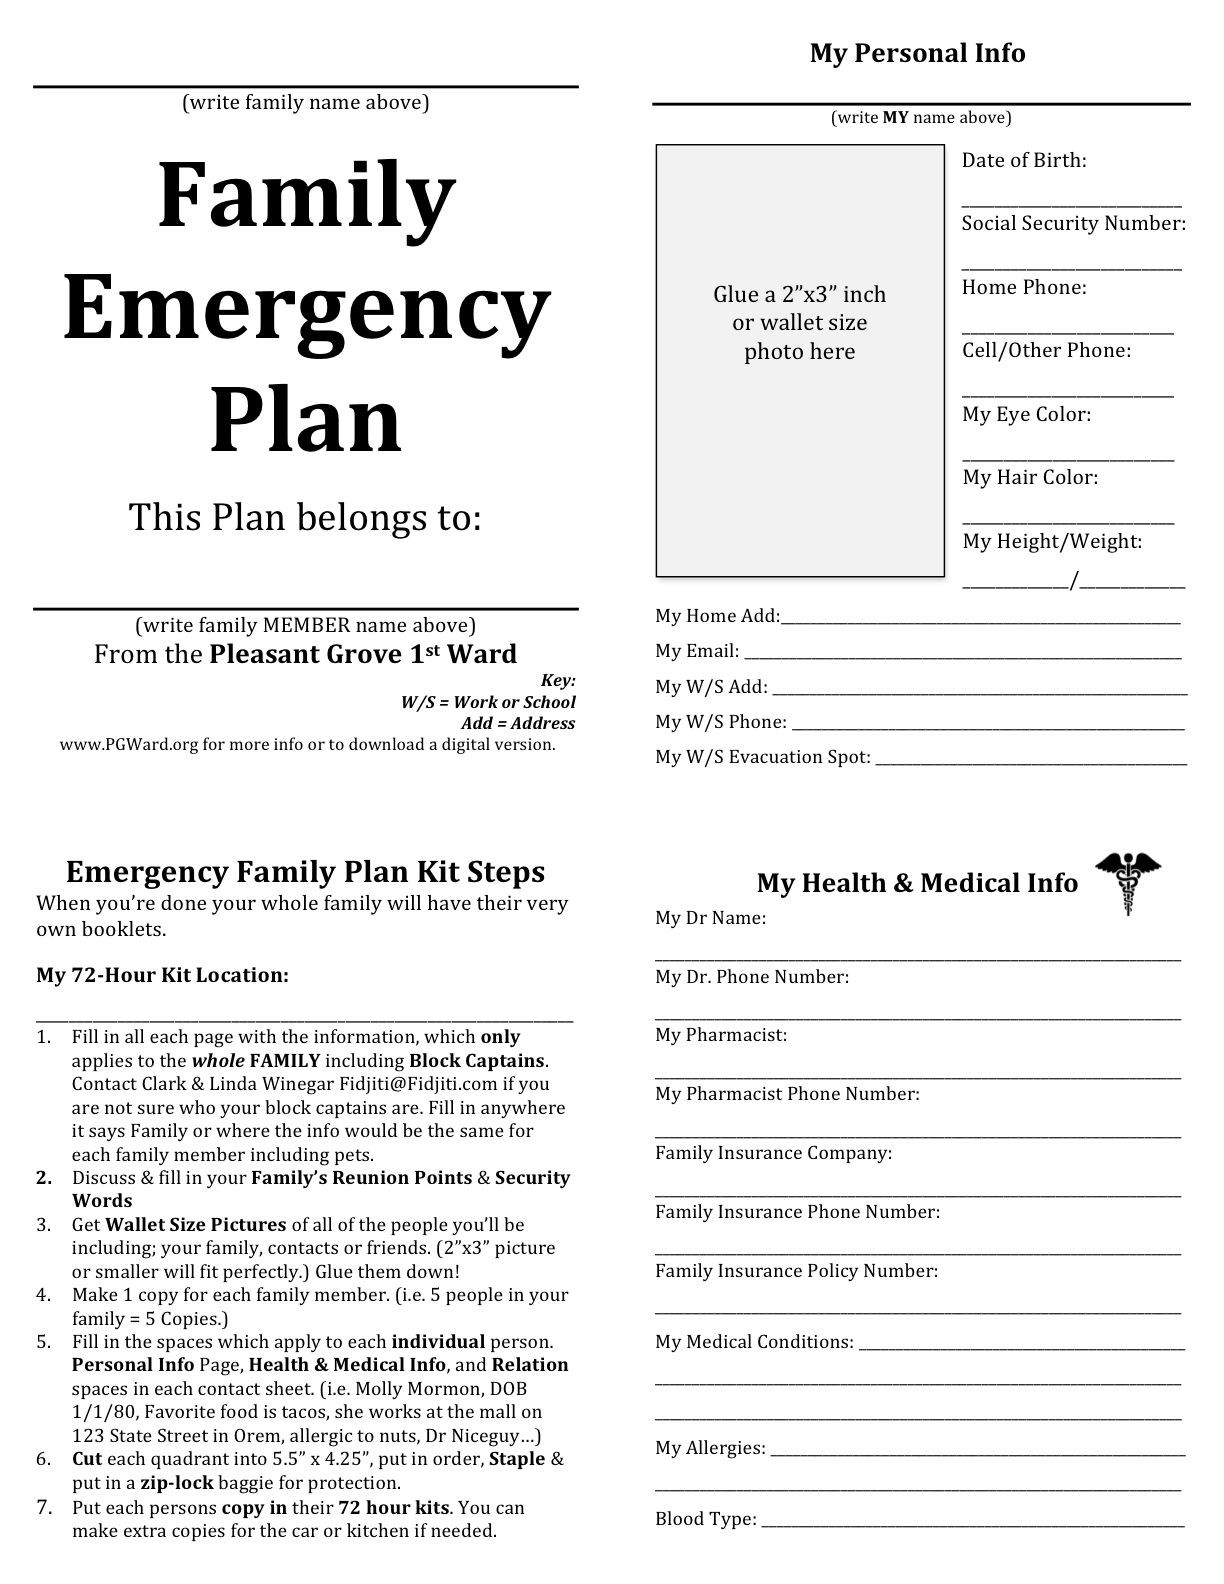 Family Emergency plan printable documents for your